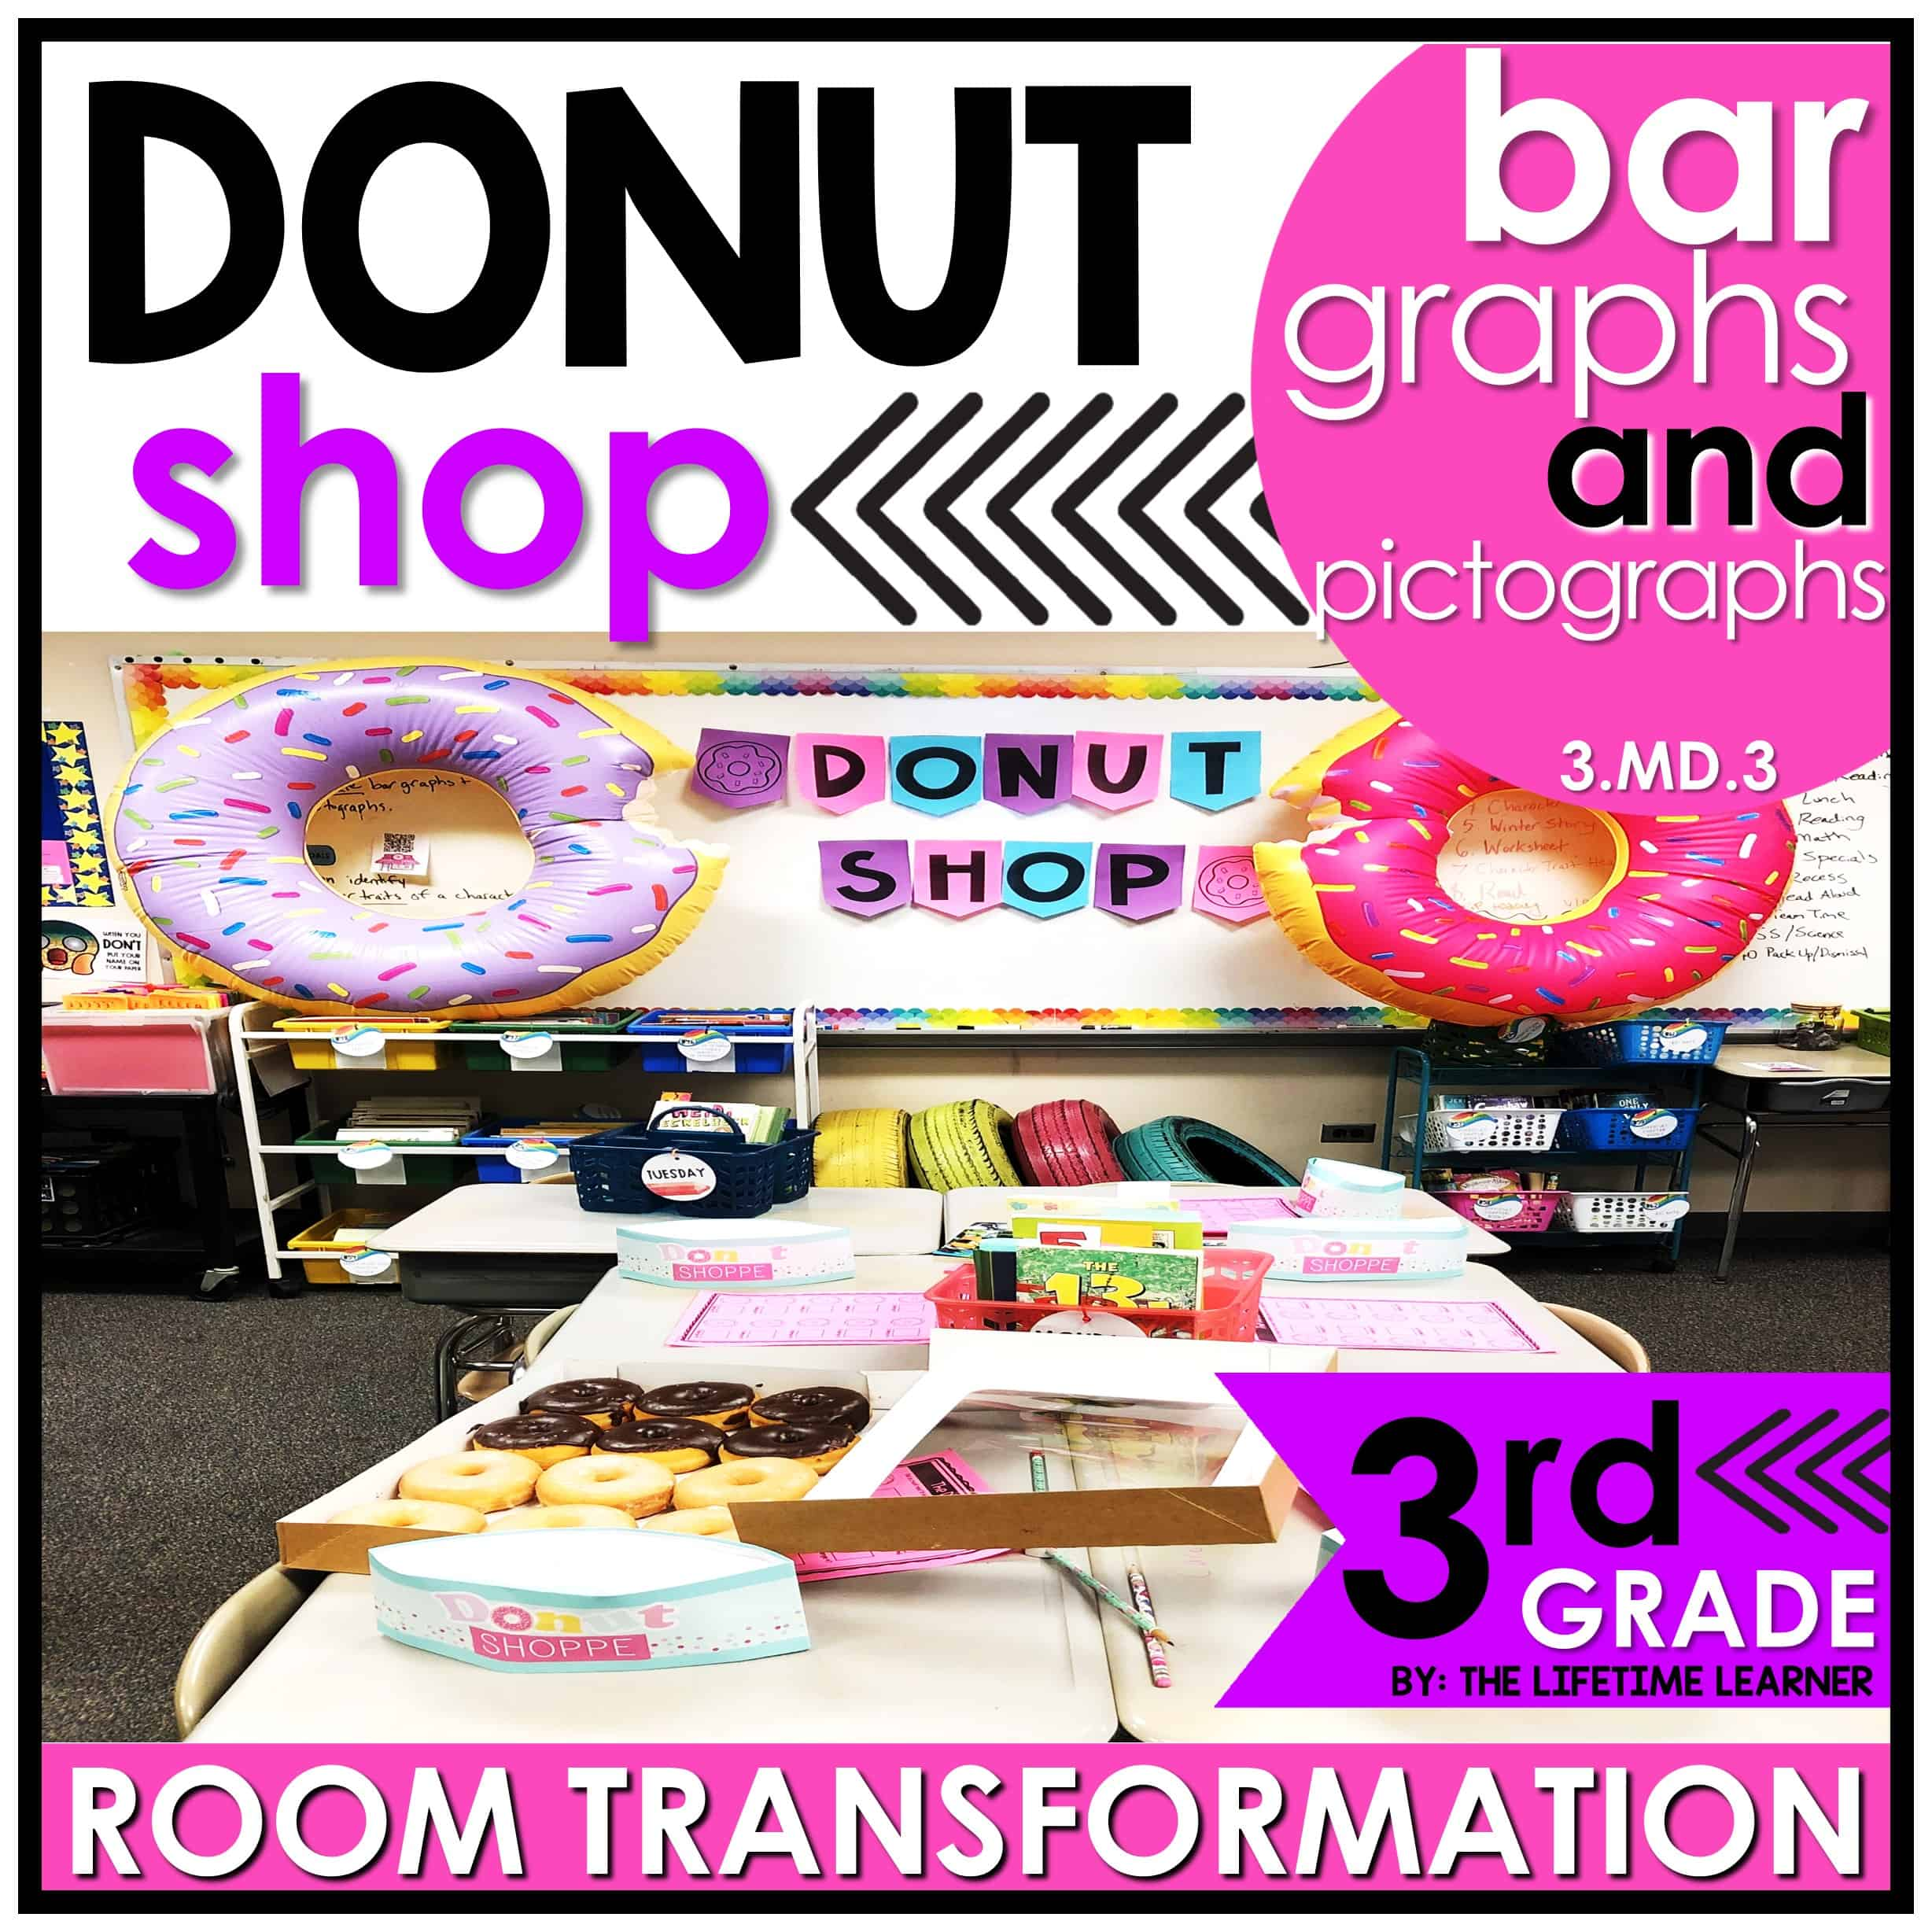 Bar Graphs and Pictographs   3rd Grade Donut Shop Classroom Transformation  - The Lifetime Learner [ 2456 x 2456 Pixel ]